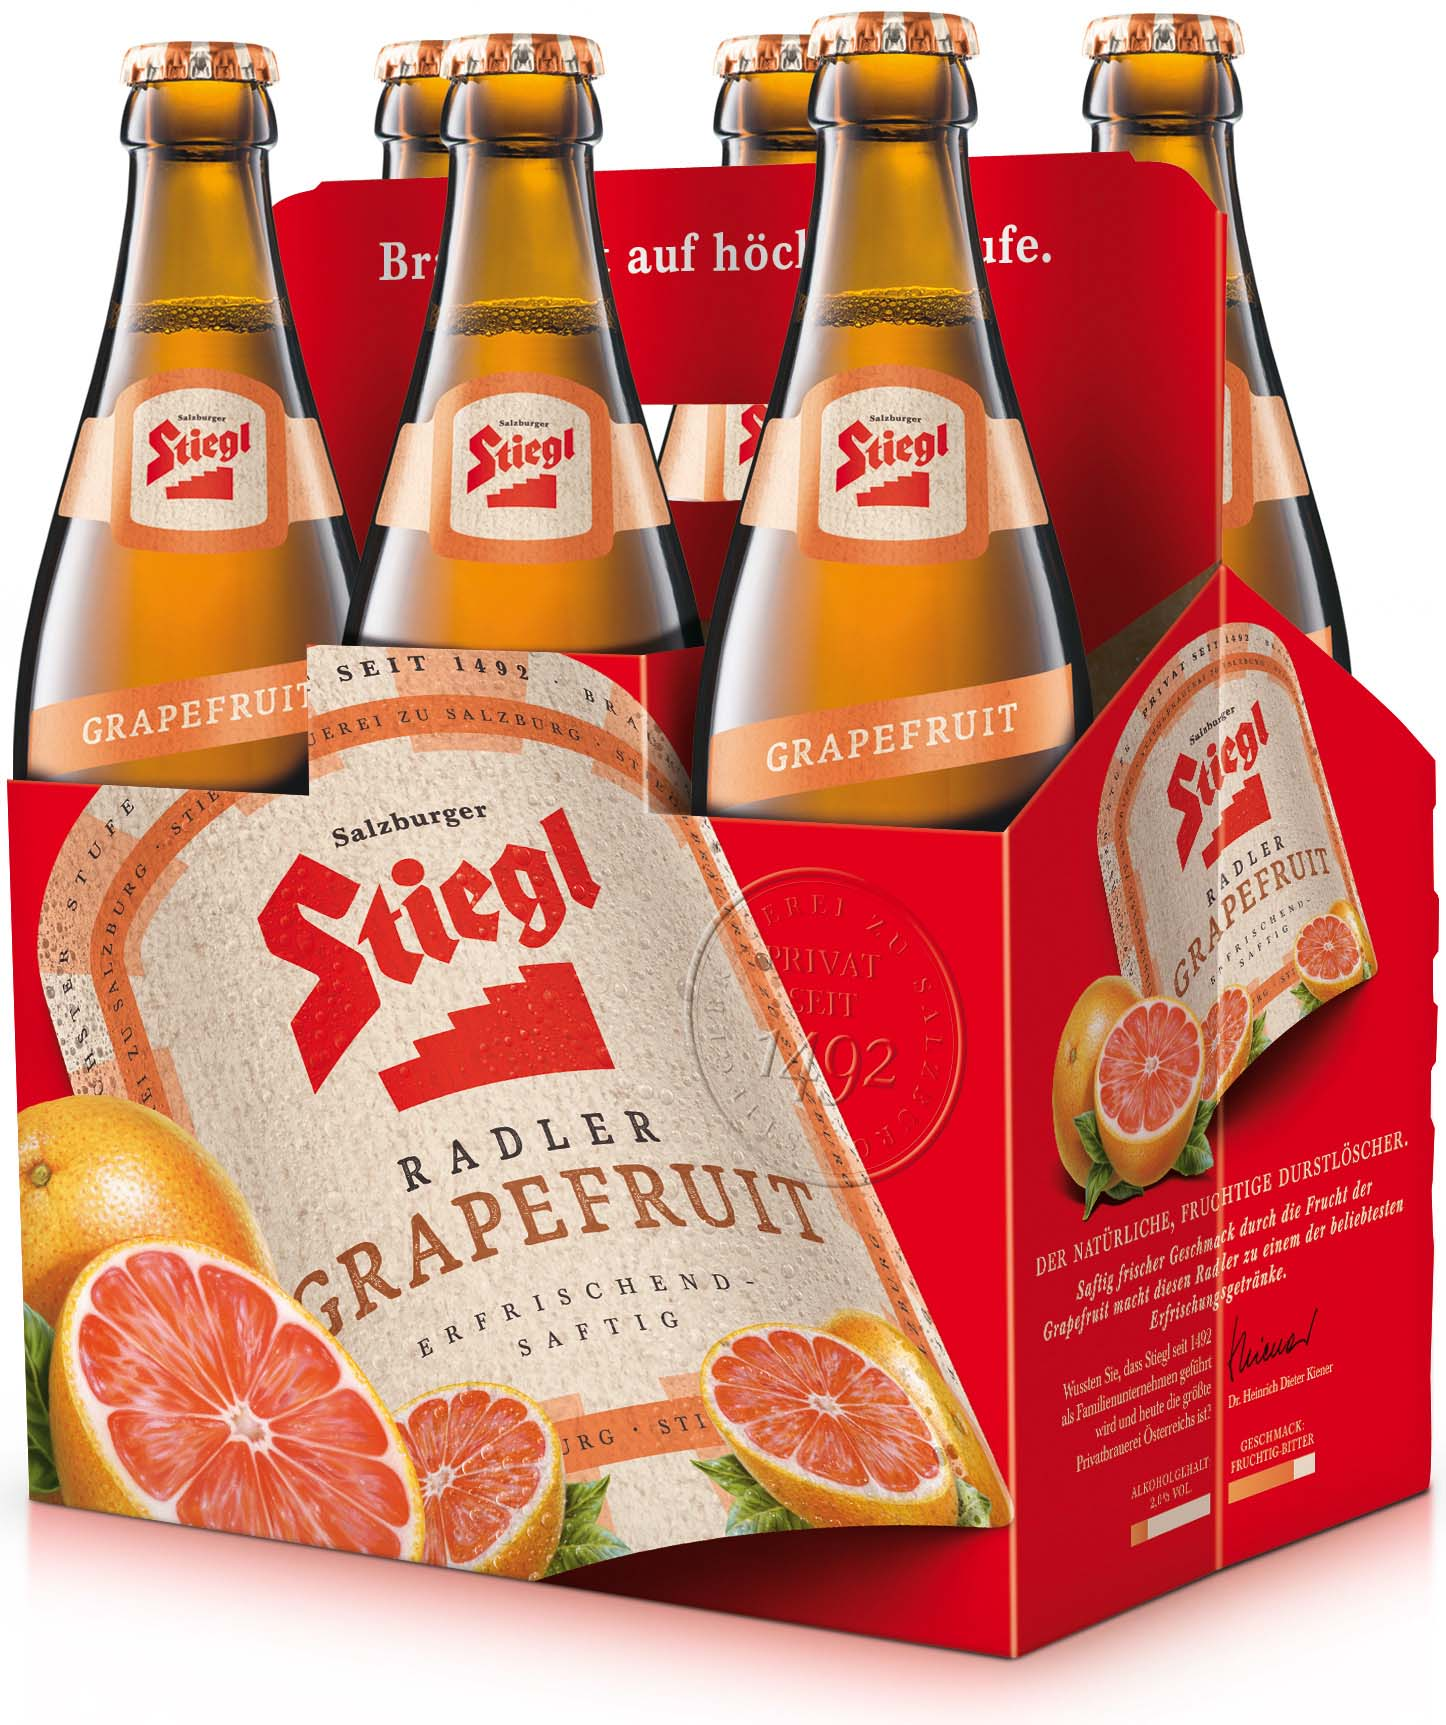 Stiegl Radler Grapefruit 6 Pack